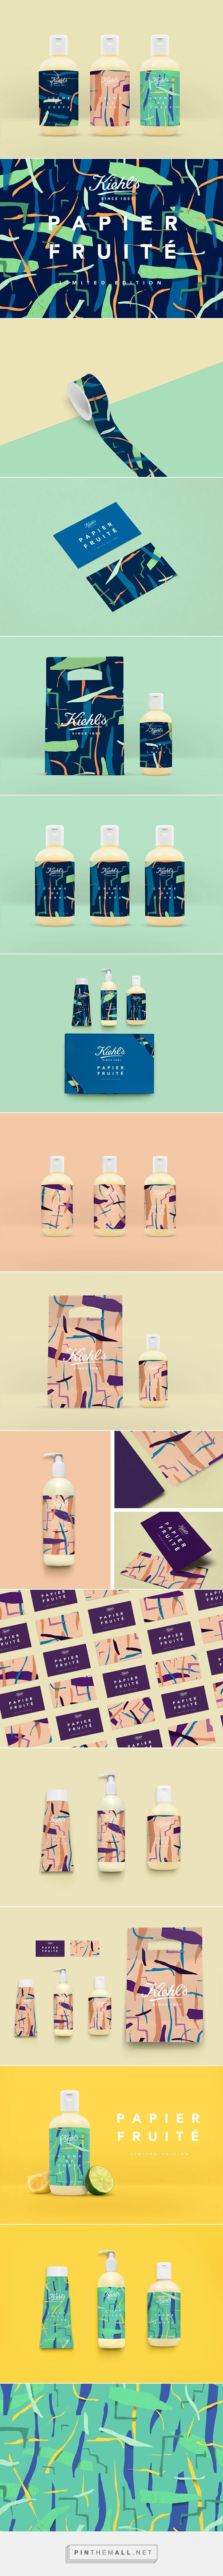 Kiehl's - Papier Fruité on Behance by Don't Try Studio curated  by Packaging Diva PD. Fun conceptual packaging project.